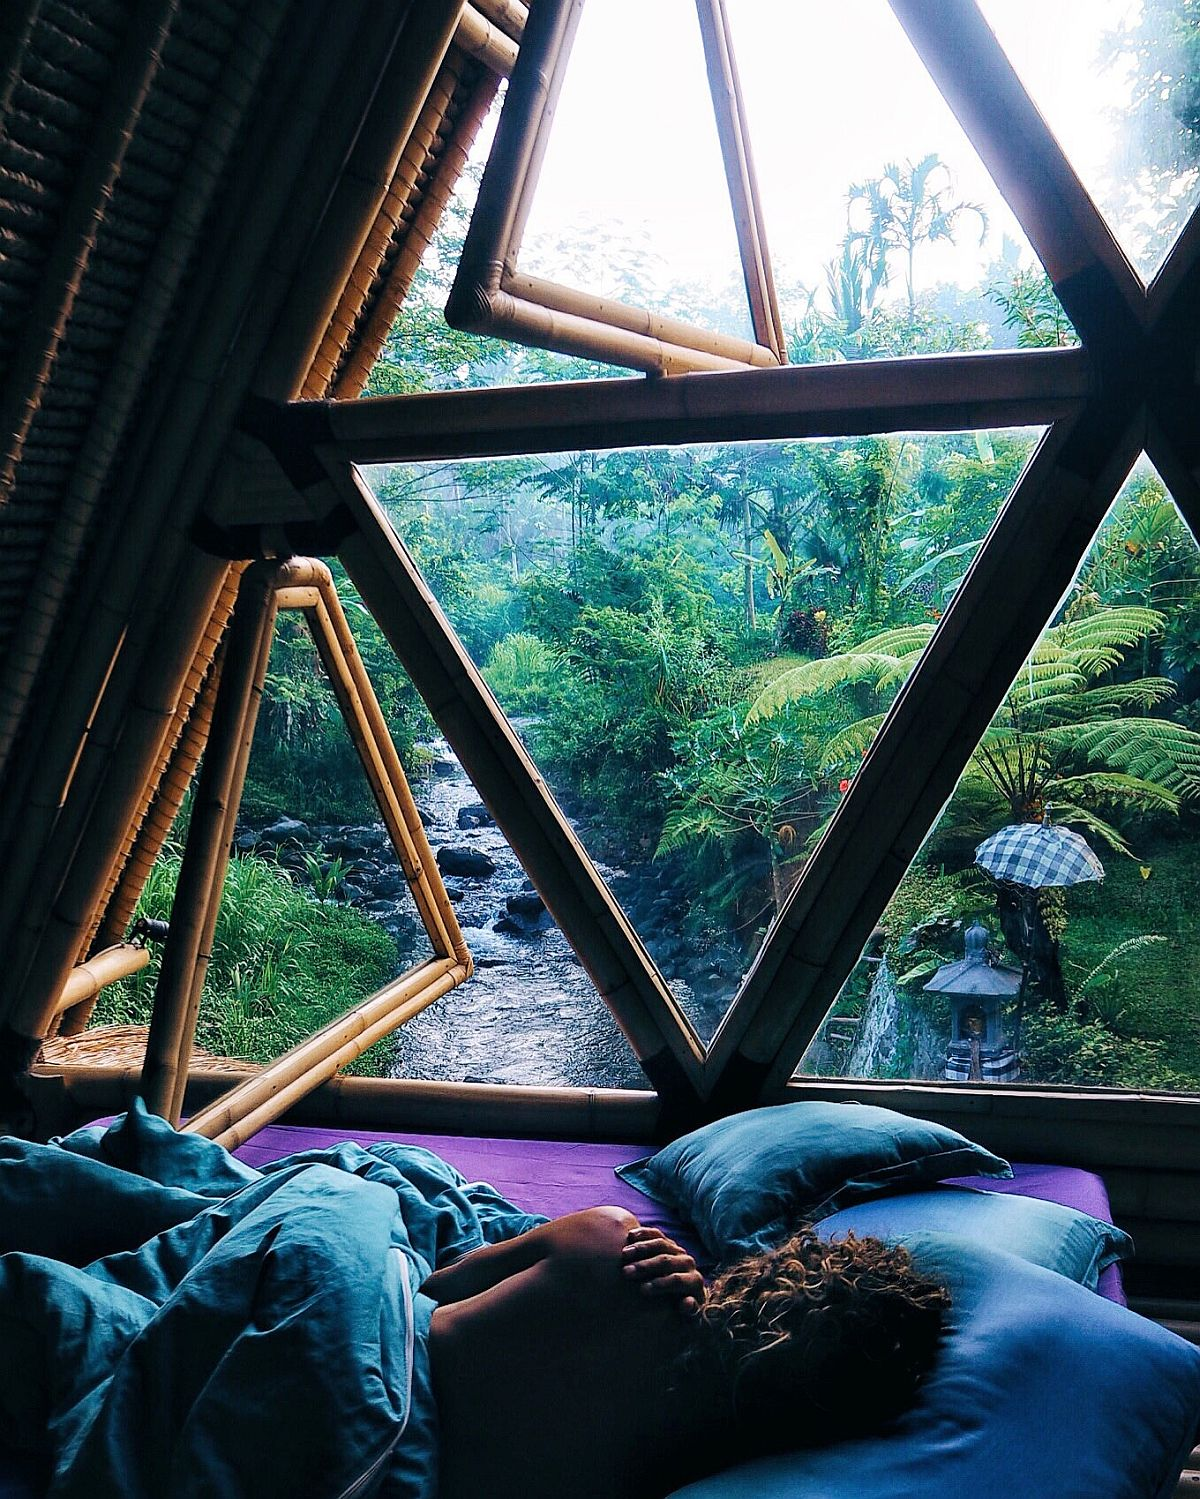 Extraordinary views of the Bali jungle from the bedroom of the hideout